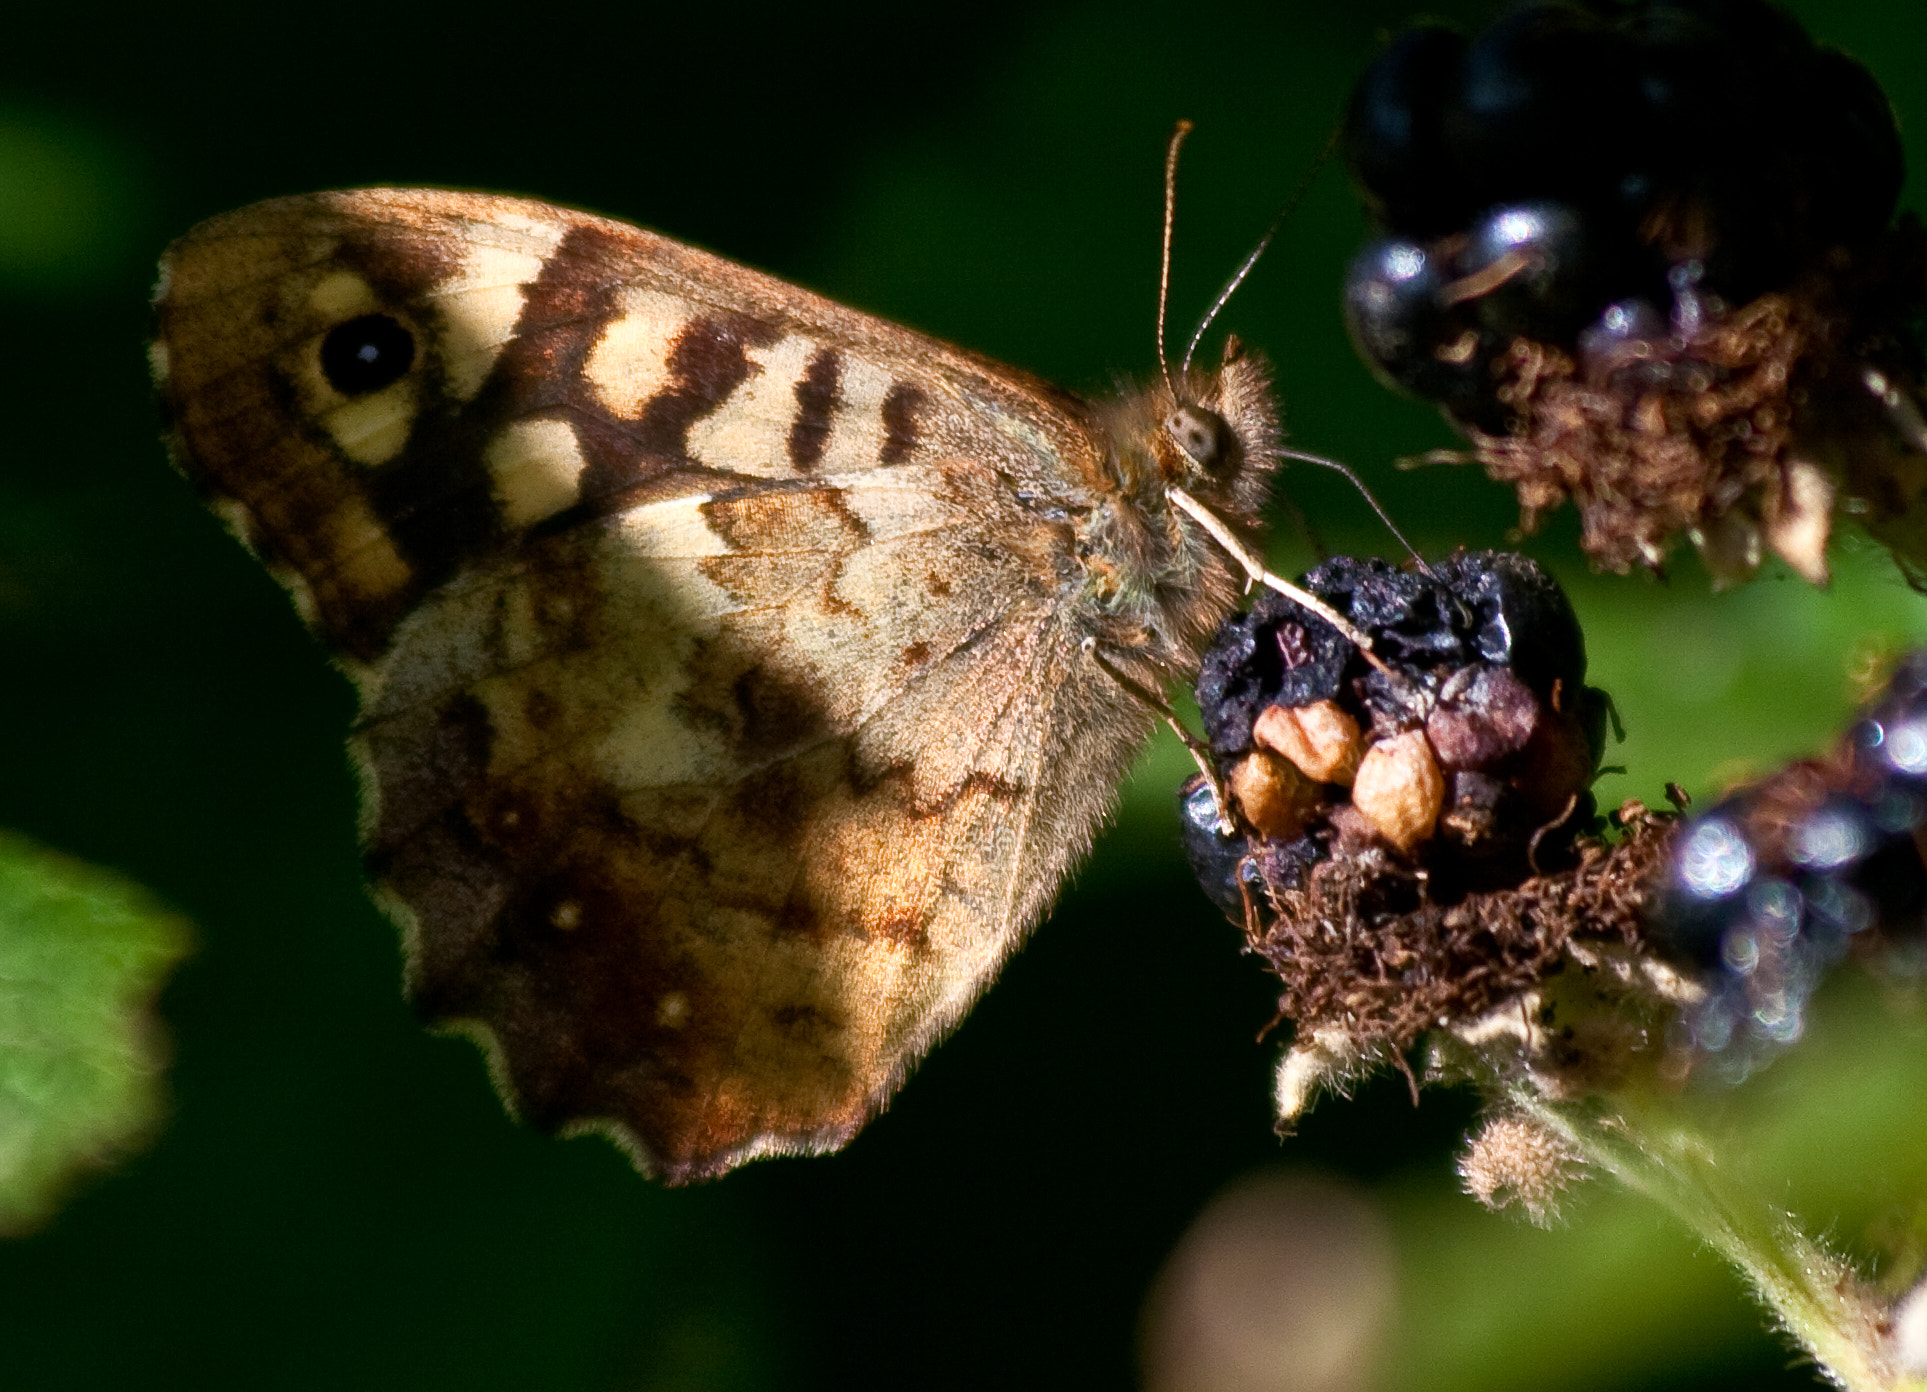 Photograph Speckled Wood butterfly by Bev Mynott on 500px